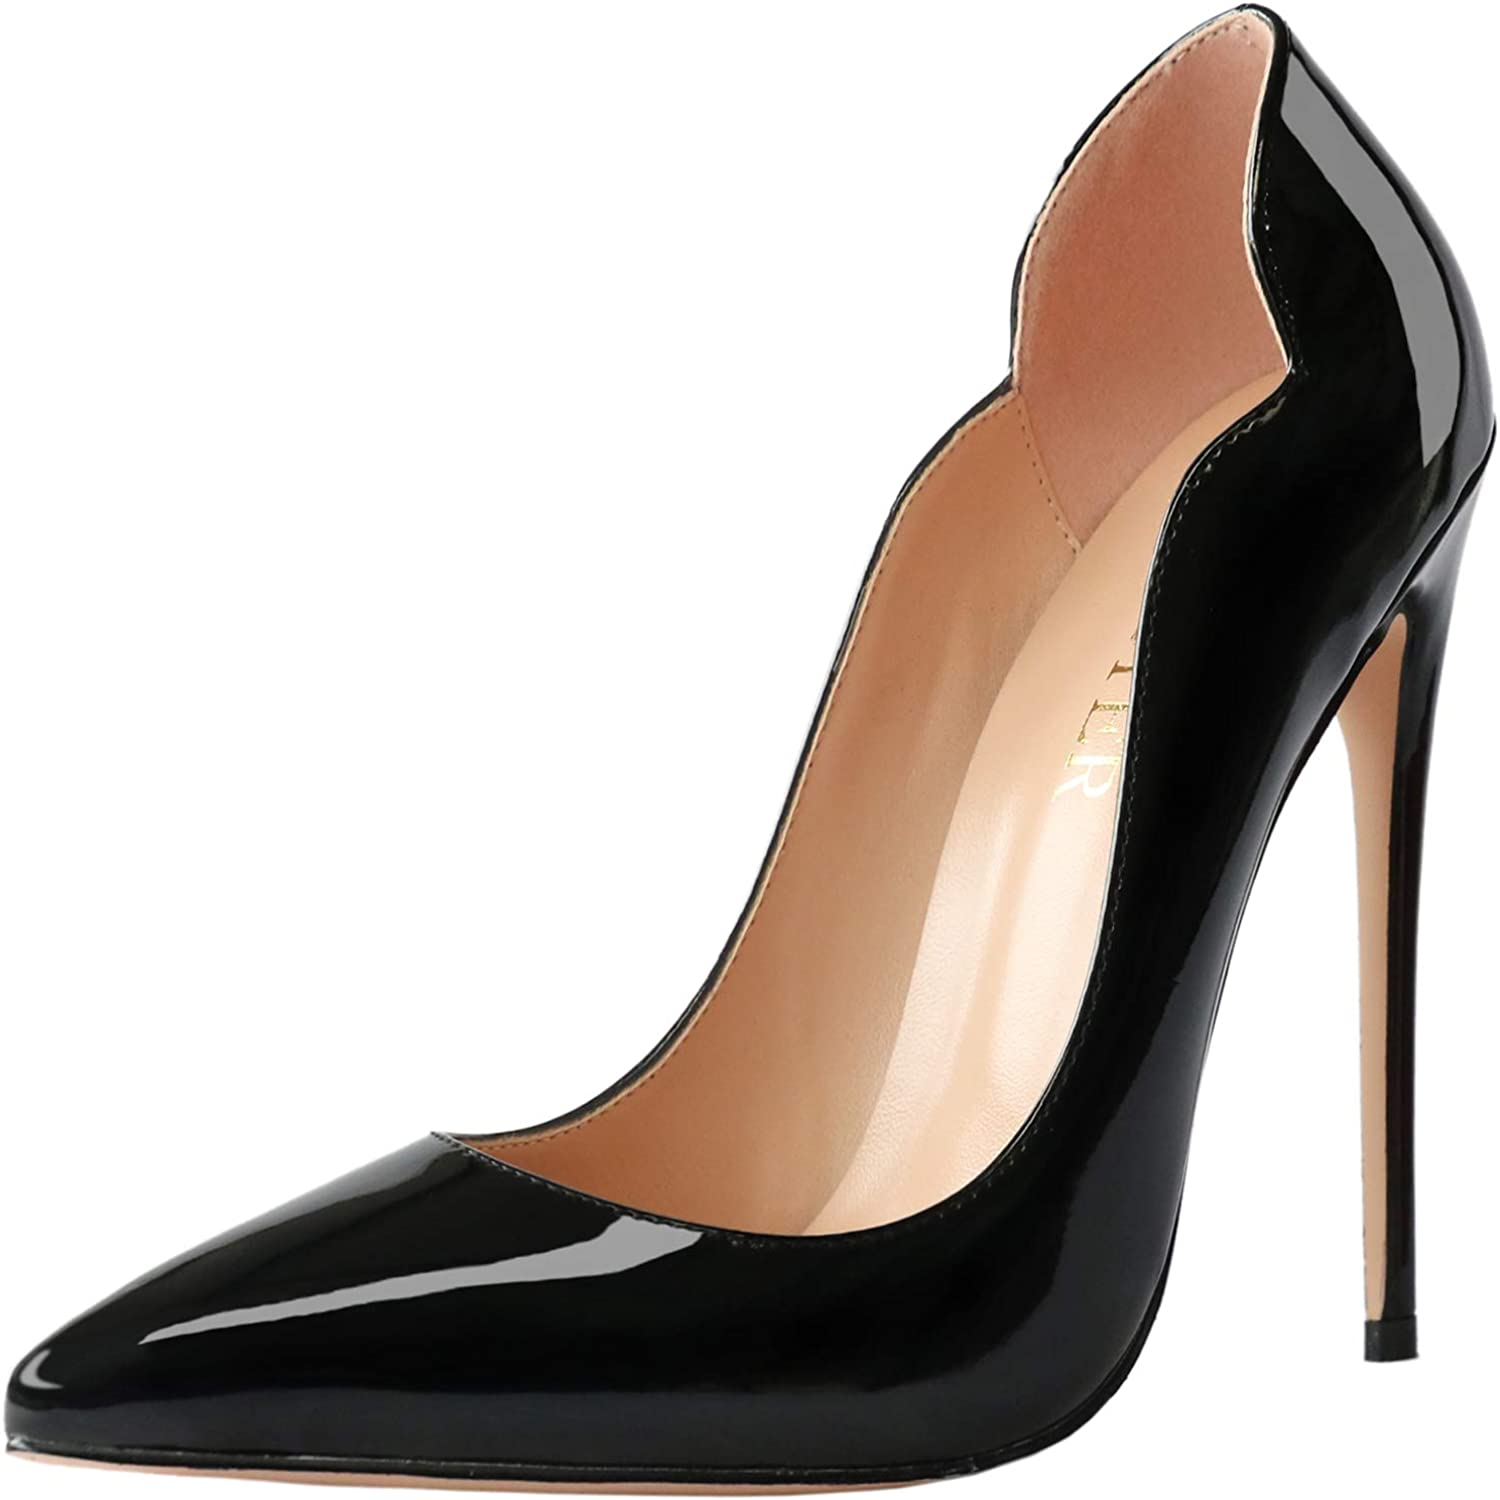 COLETER High Heels for Women 4.72 Pointed 12cm Toe Lowest price challenge Cheap inch S Dress